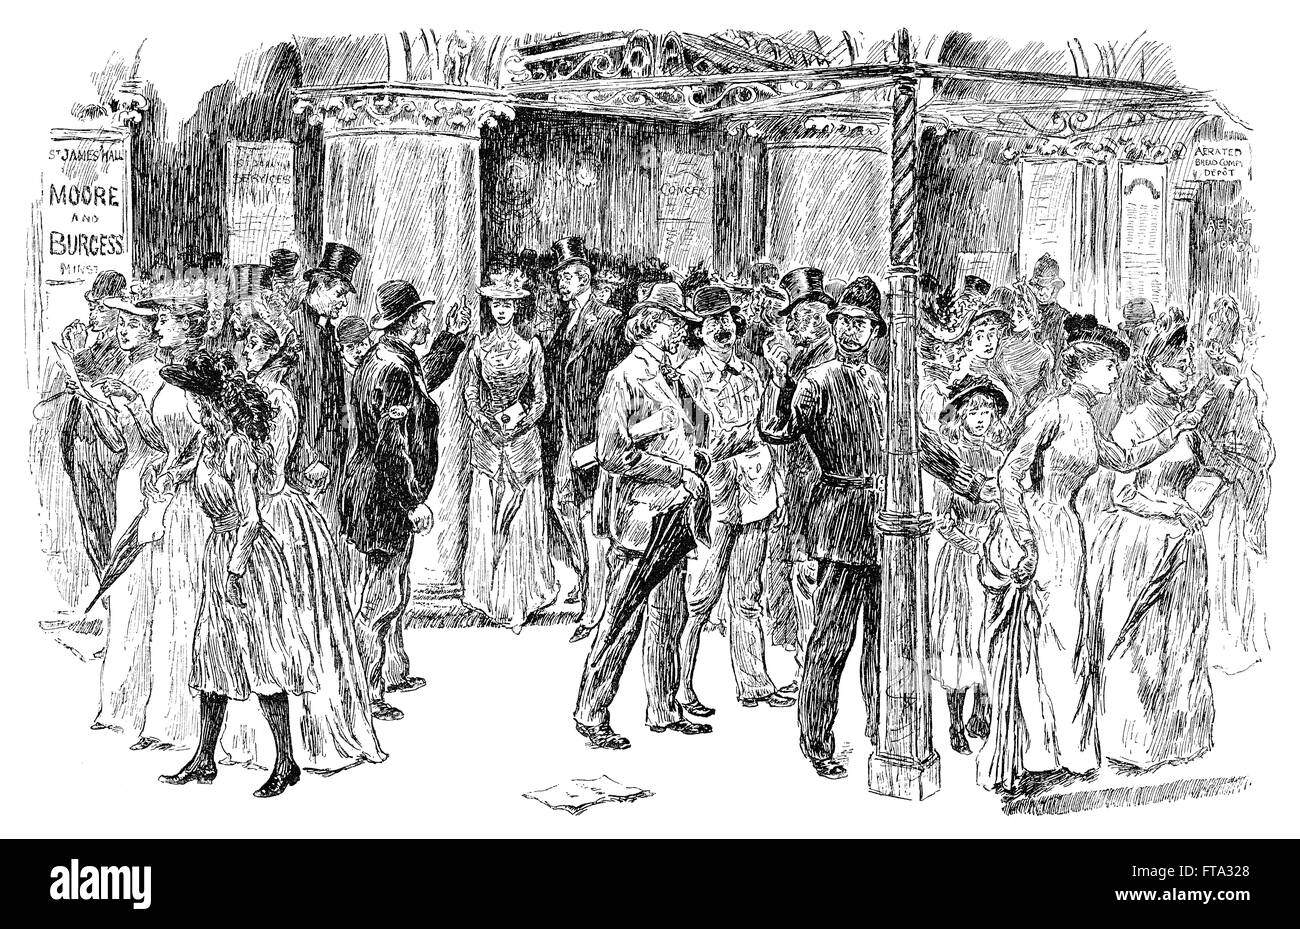 Black and white engraving of Victorians leaving St. James's Hall, Piccadilly, London after an afternoon concert. - Stock Image